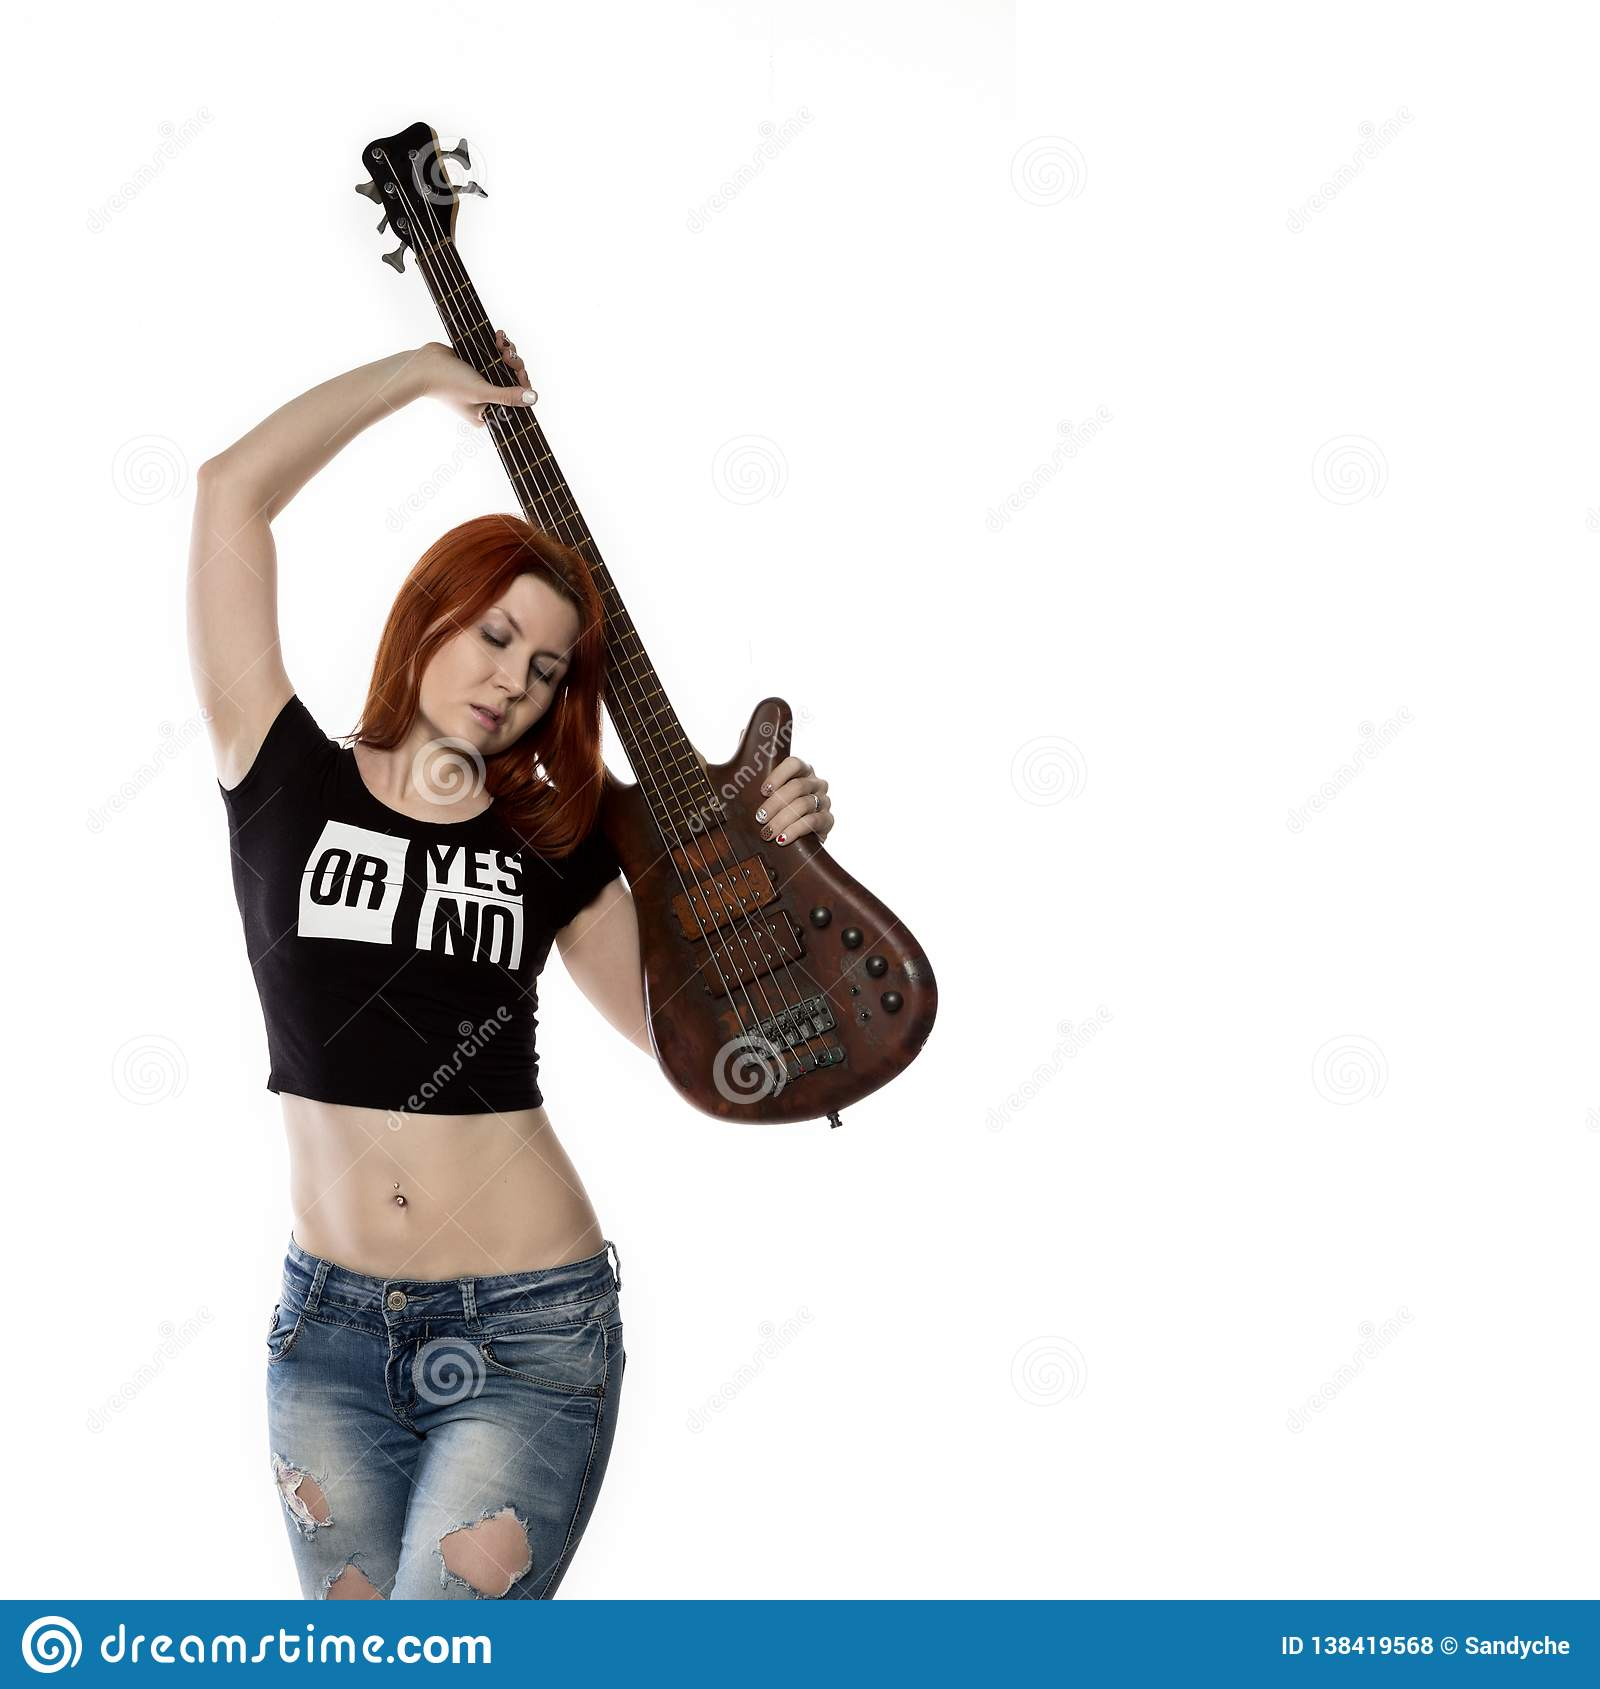 Are certainly sexy girl playing electric guitar charming message